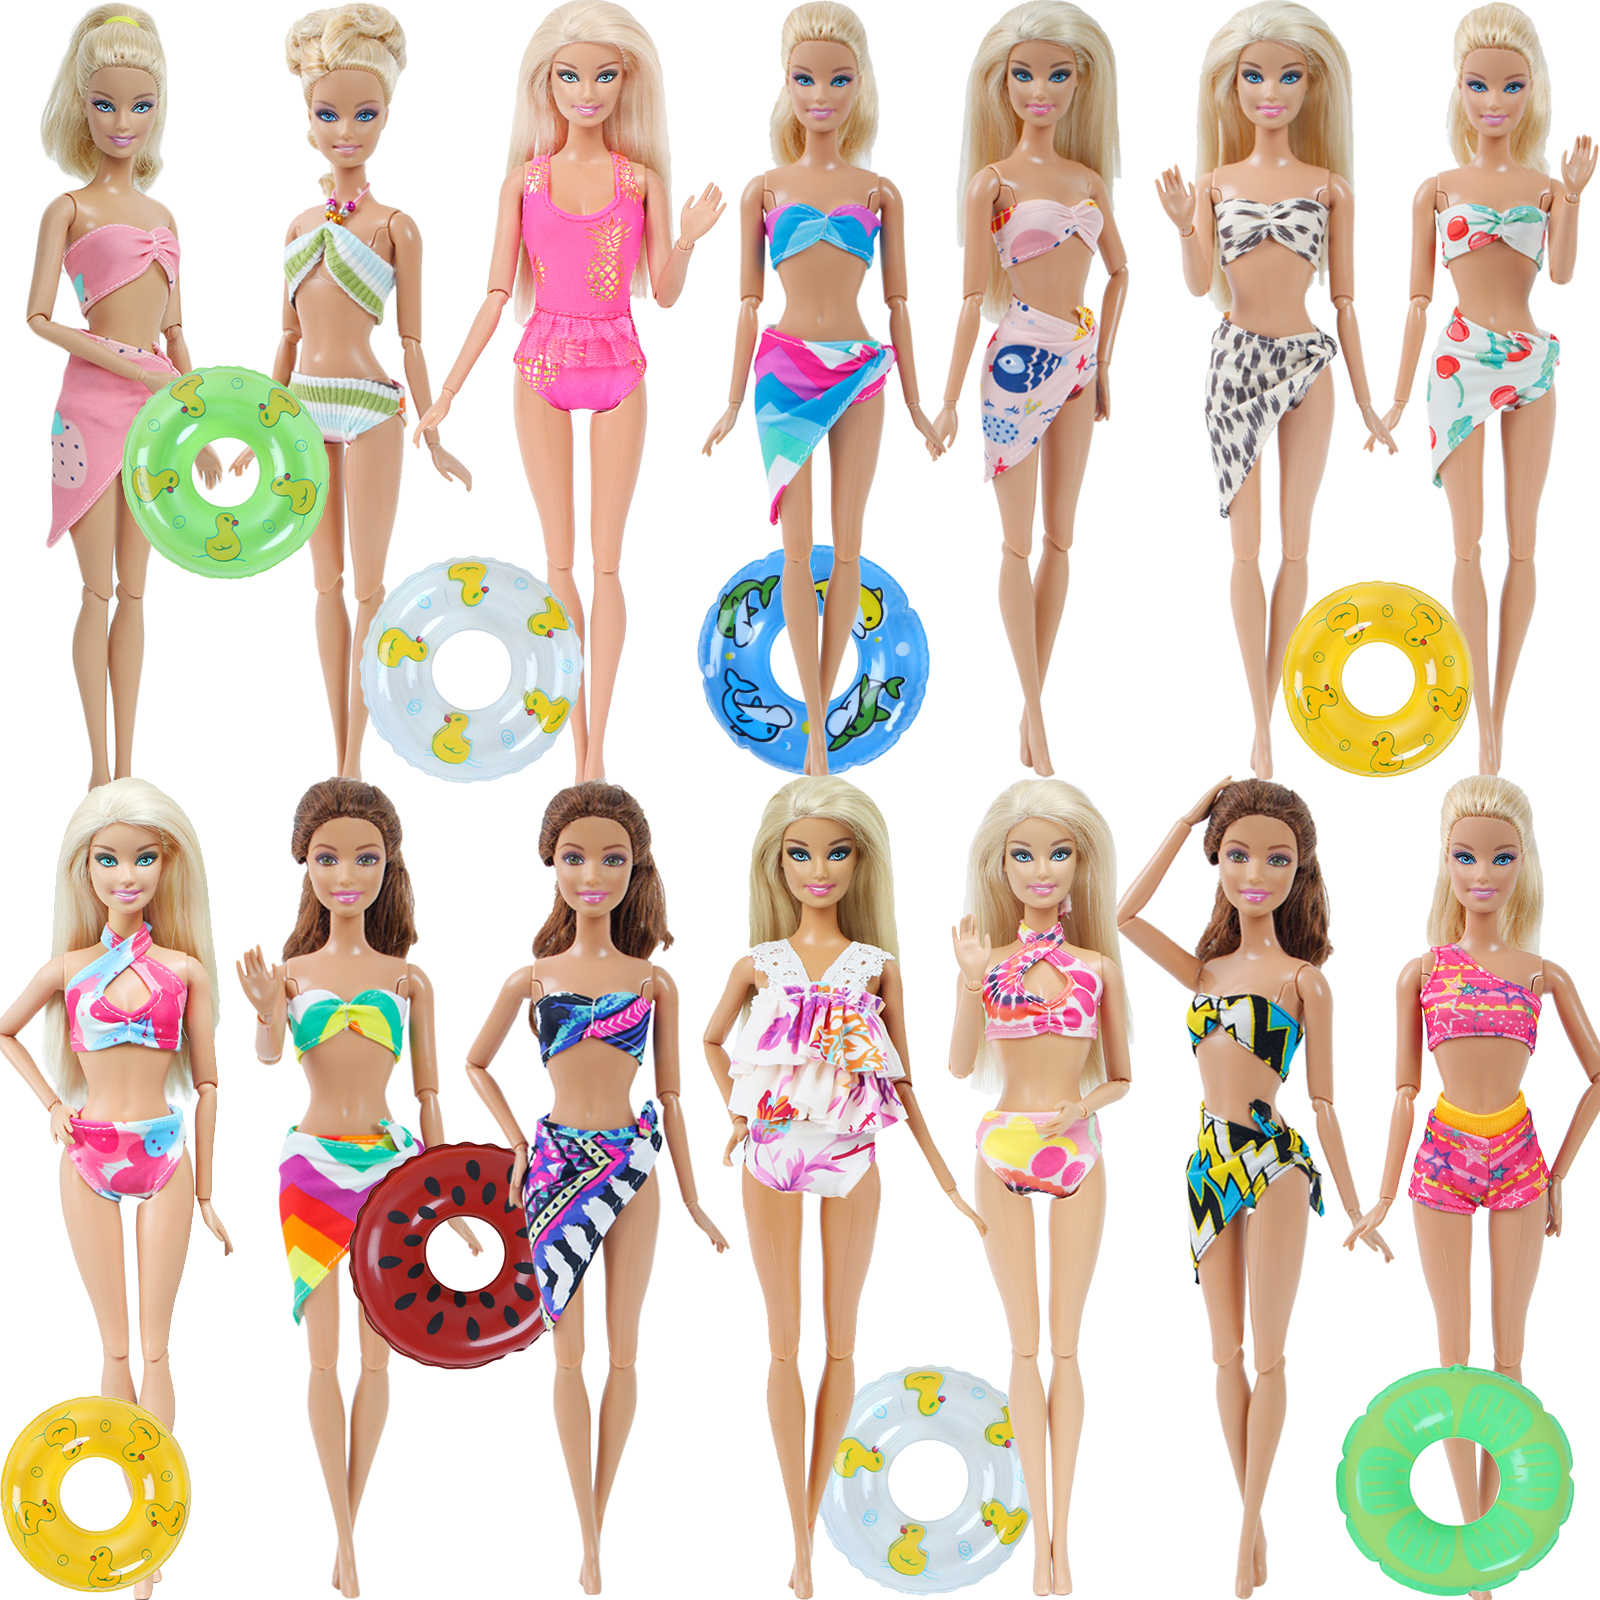 Mix Doll Swimwear + Lifebuoy / Swimming Rings Swimsuits Bikini Buoy Beach Bathing Clothes Accessories for Barbie Doll Girl's Toy